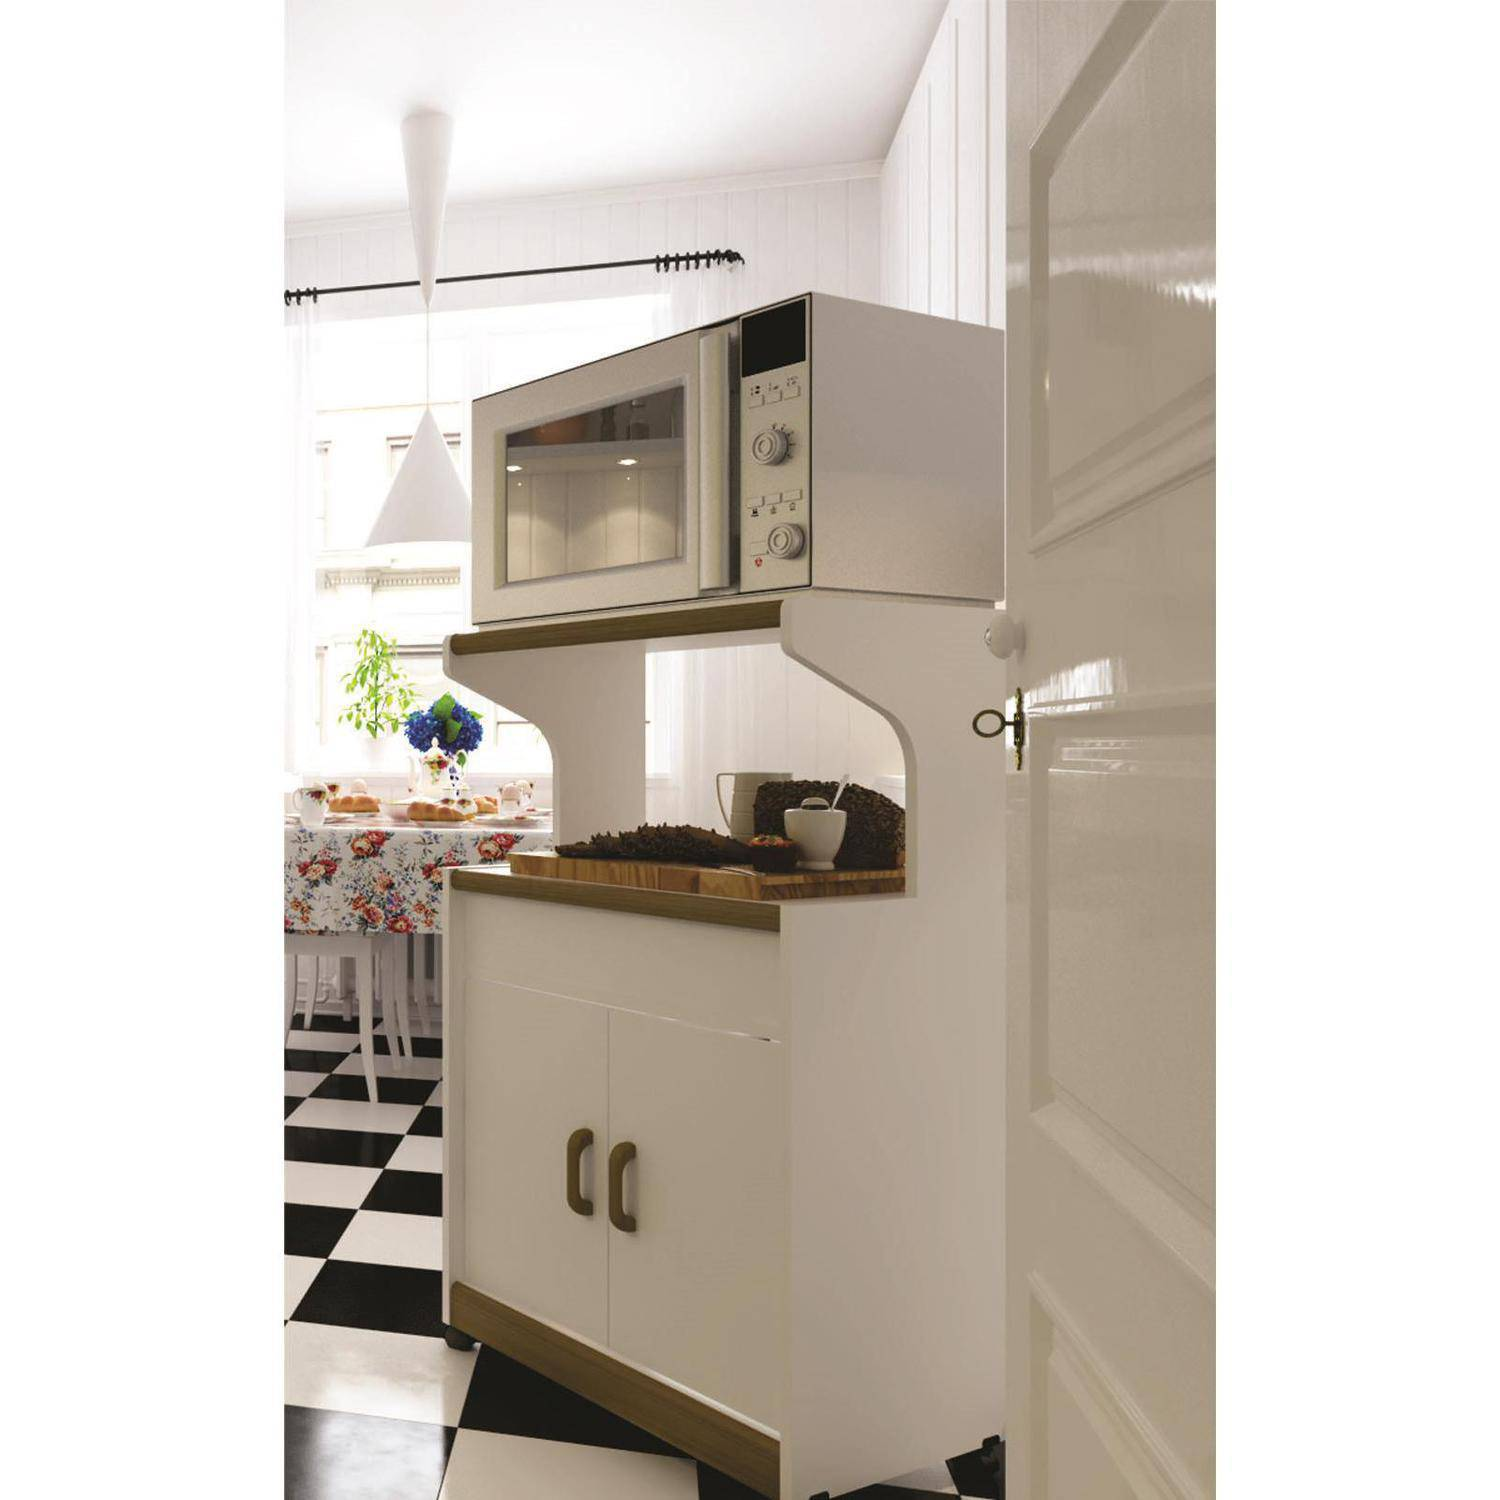 Microwave Cabinet With Shelves, White - Walmart.com